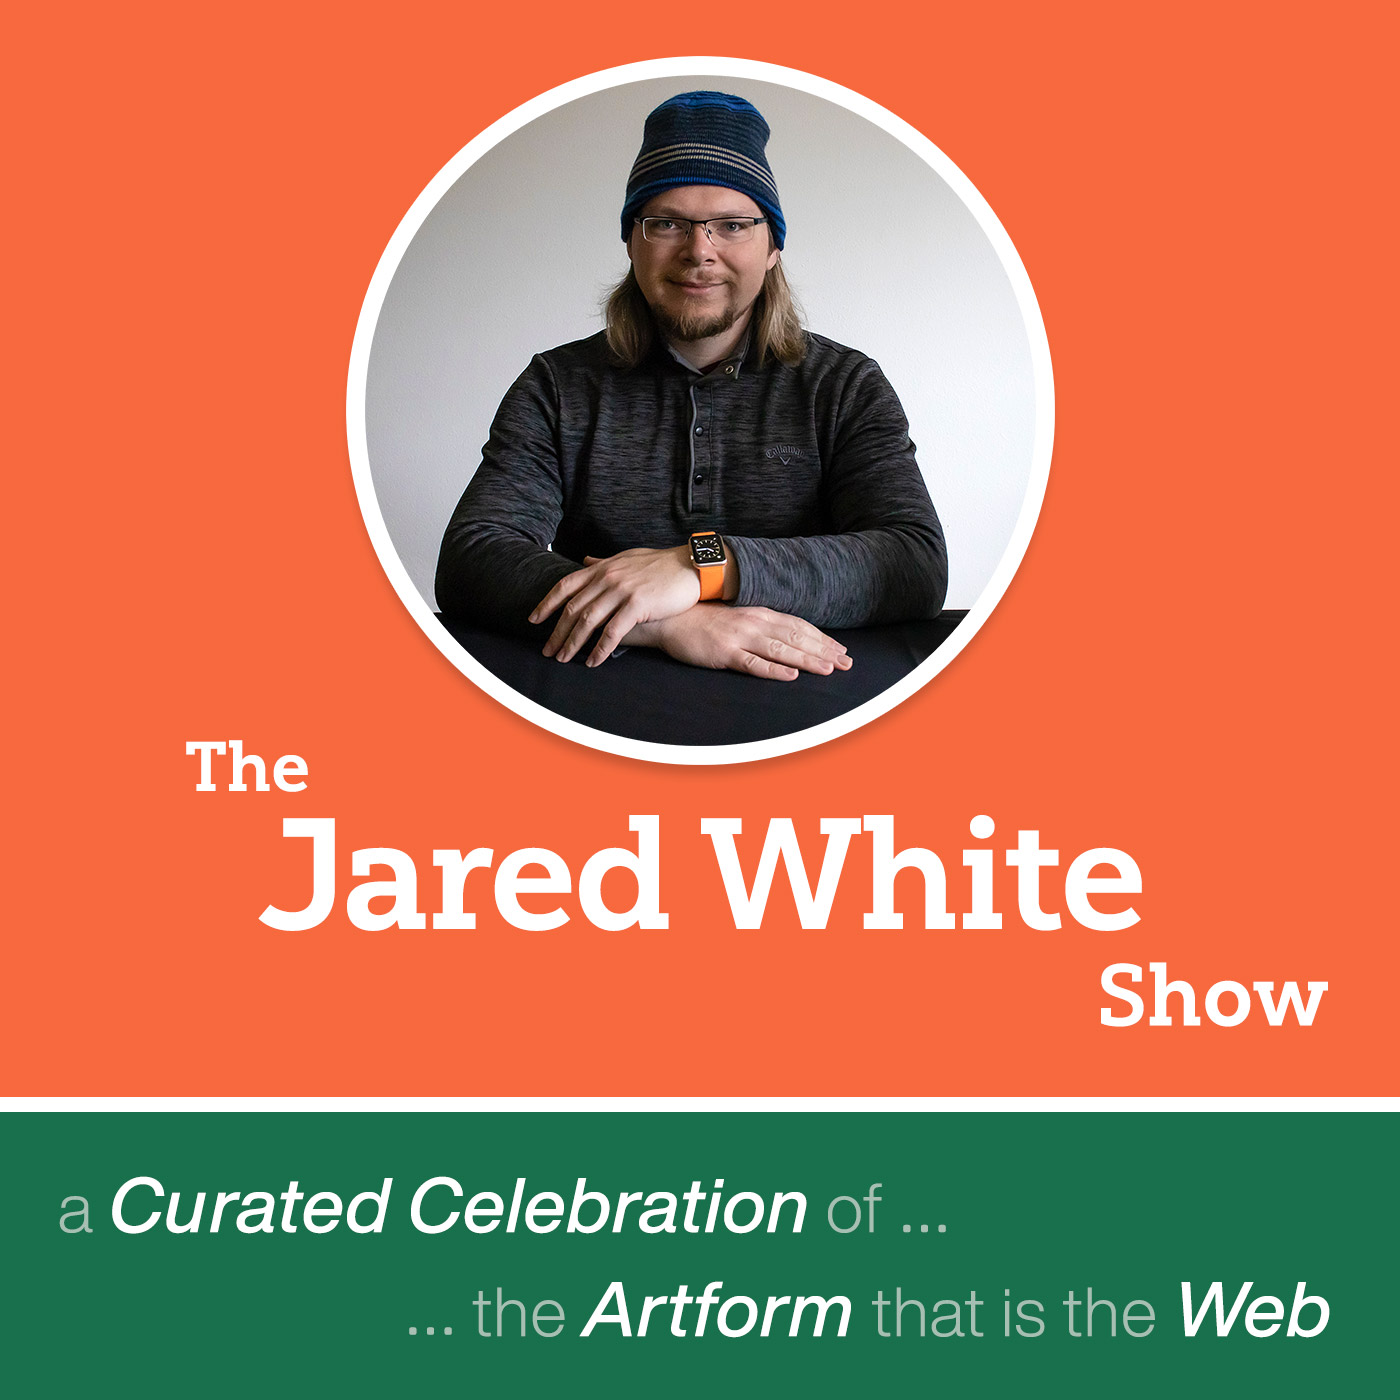 The Jared White Show